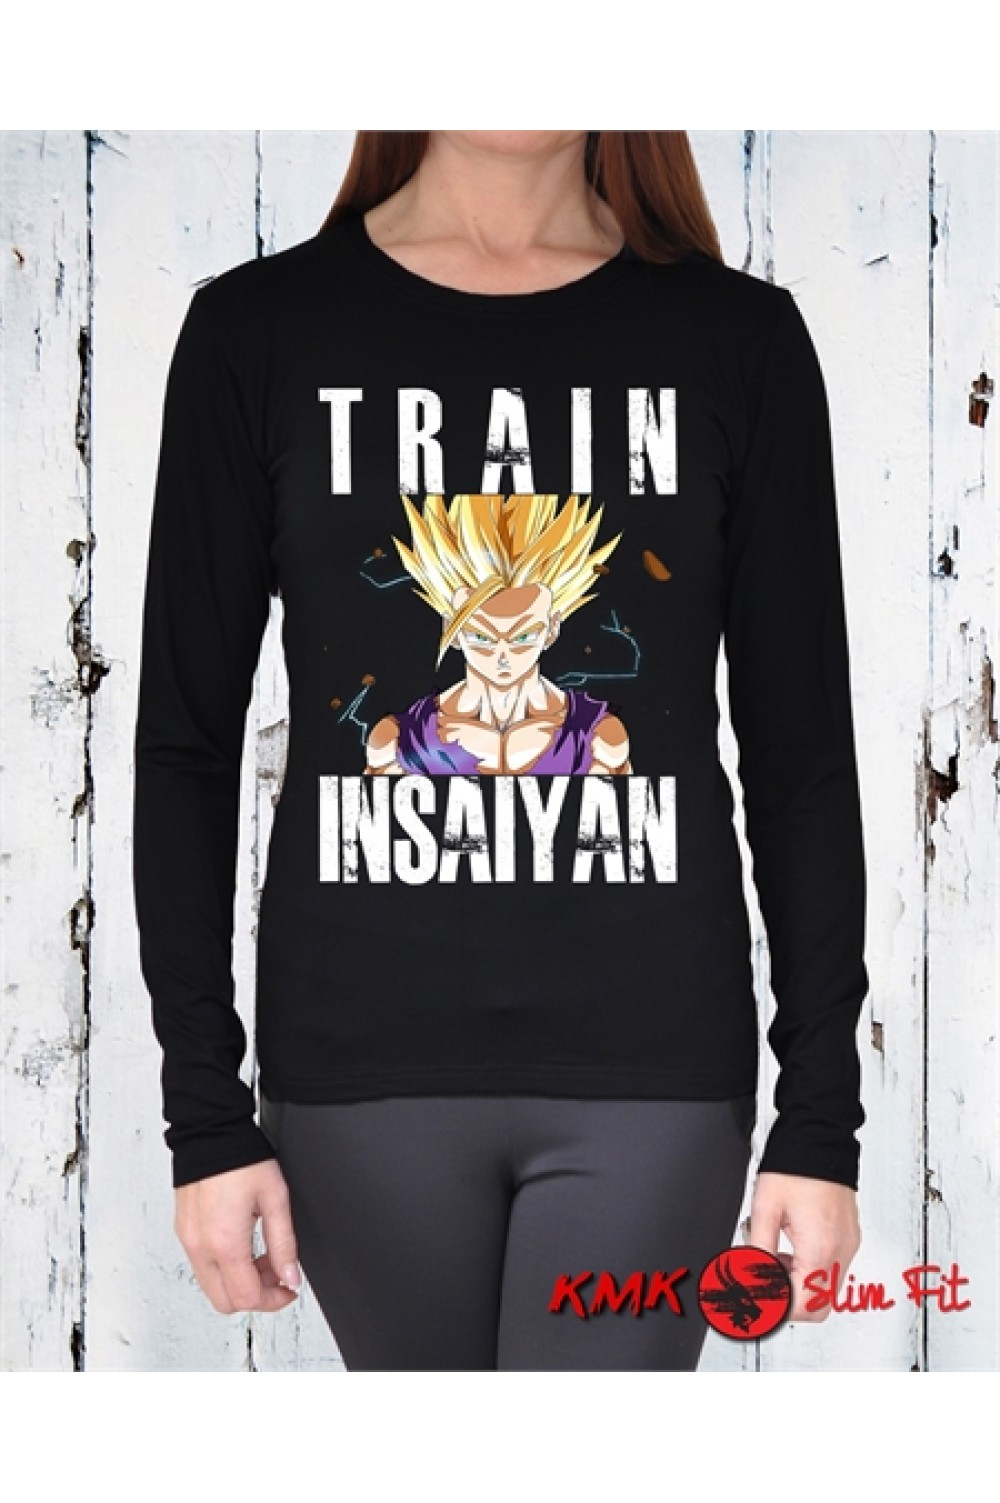 Train Insaiyan 1 Printed T shirt | Sport Tanktop | Fitness Tee | Long and Short Shirt